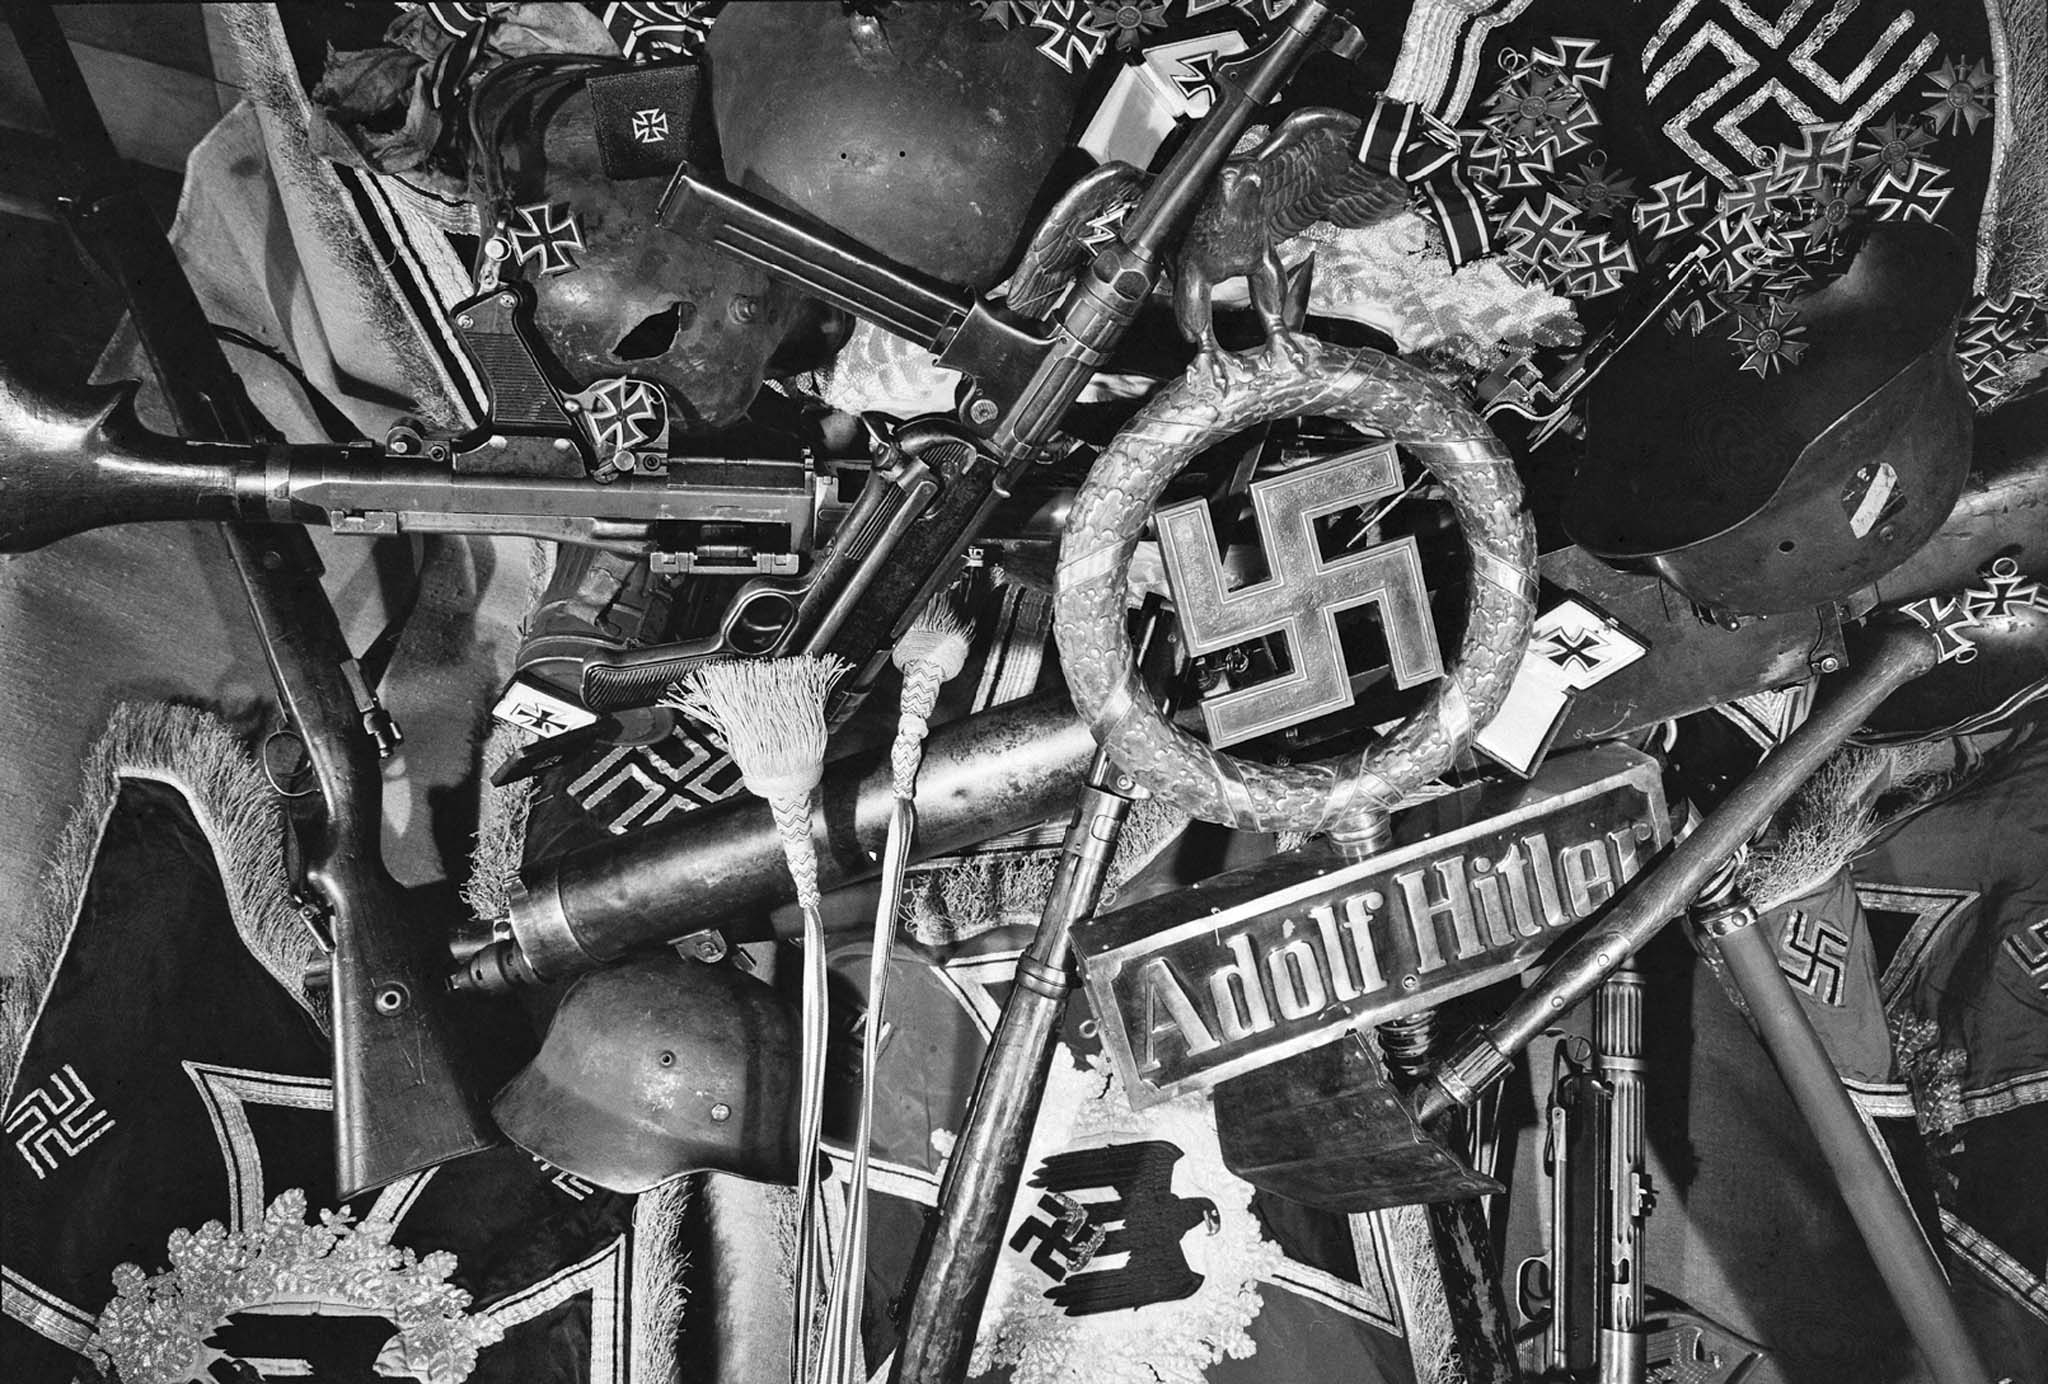 German weapons, Wehrmacht banners